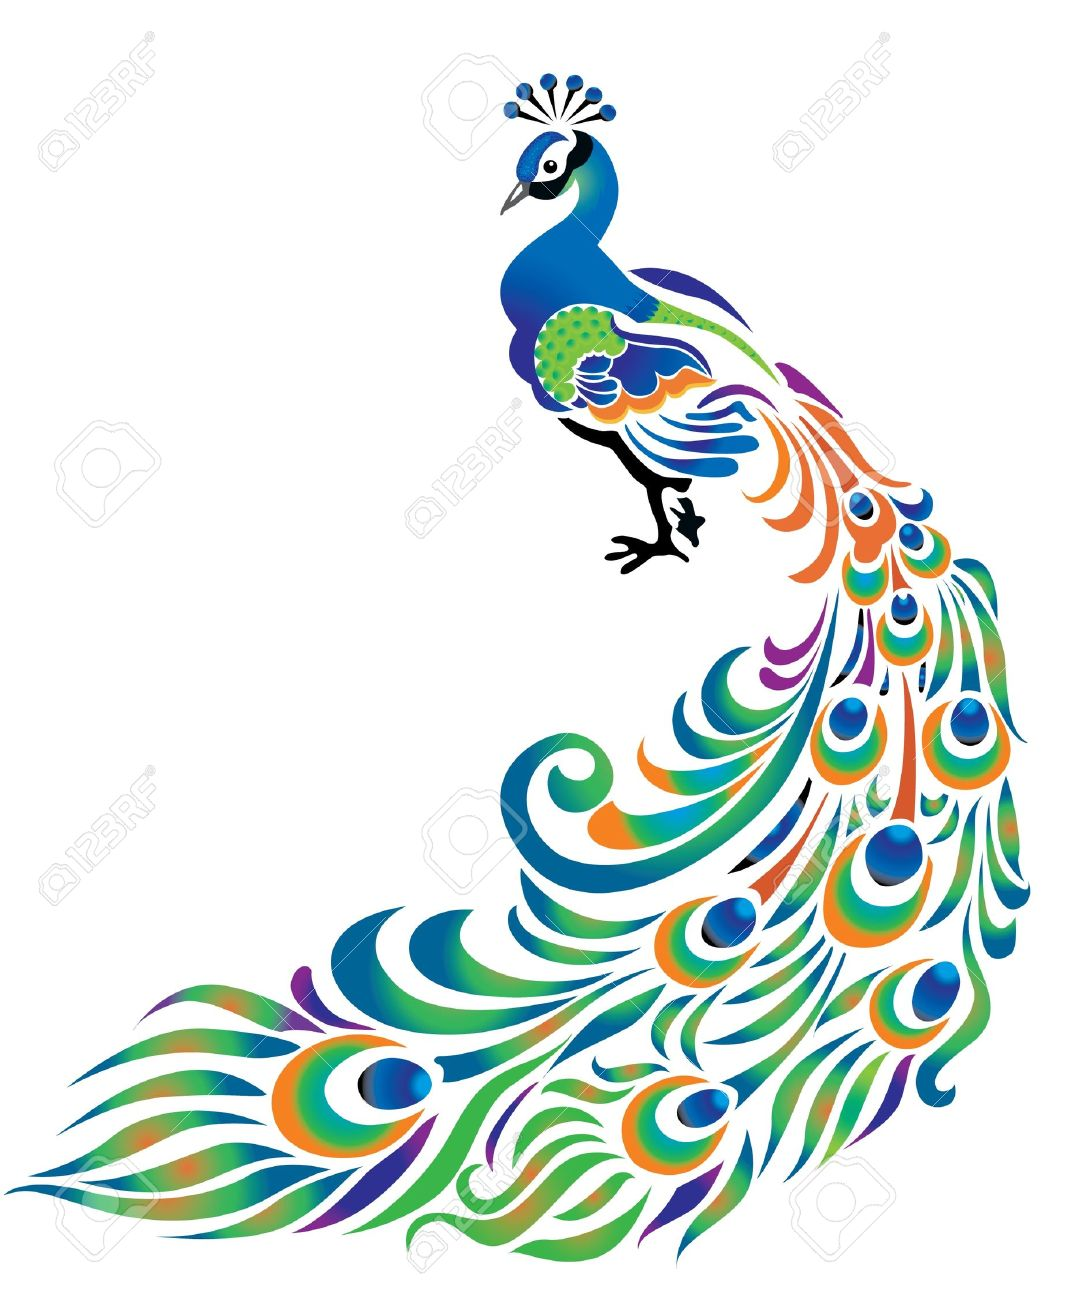 peacock with tail dissolved on the white background royalty free rh 123rf com peacock vector art peacock vector art